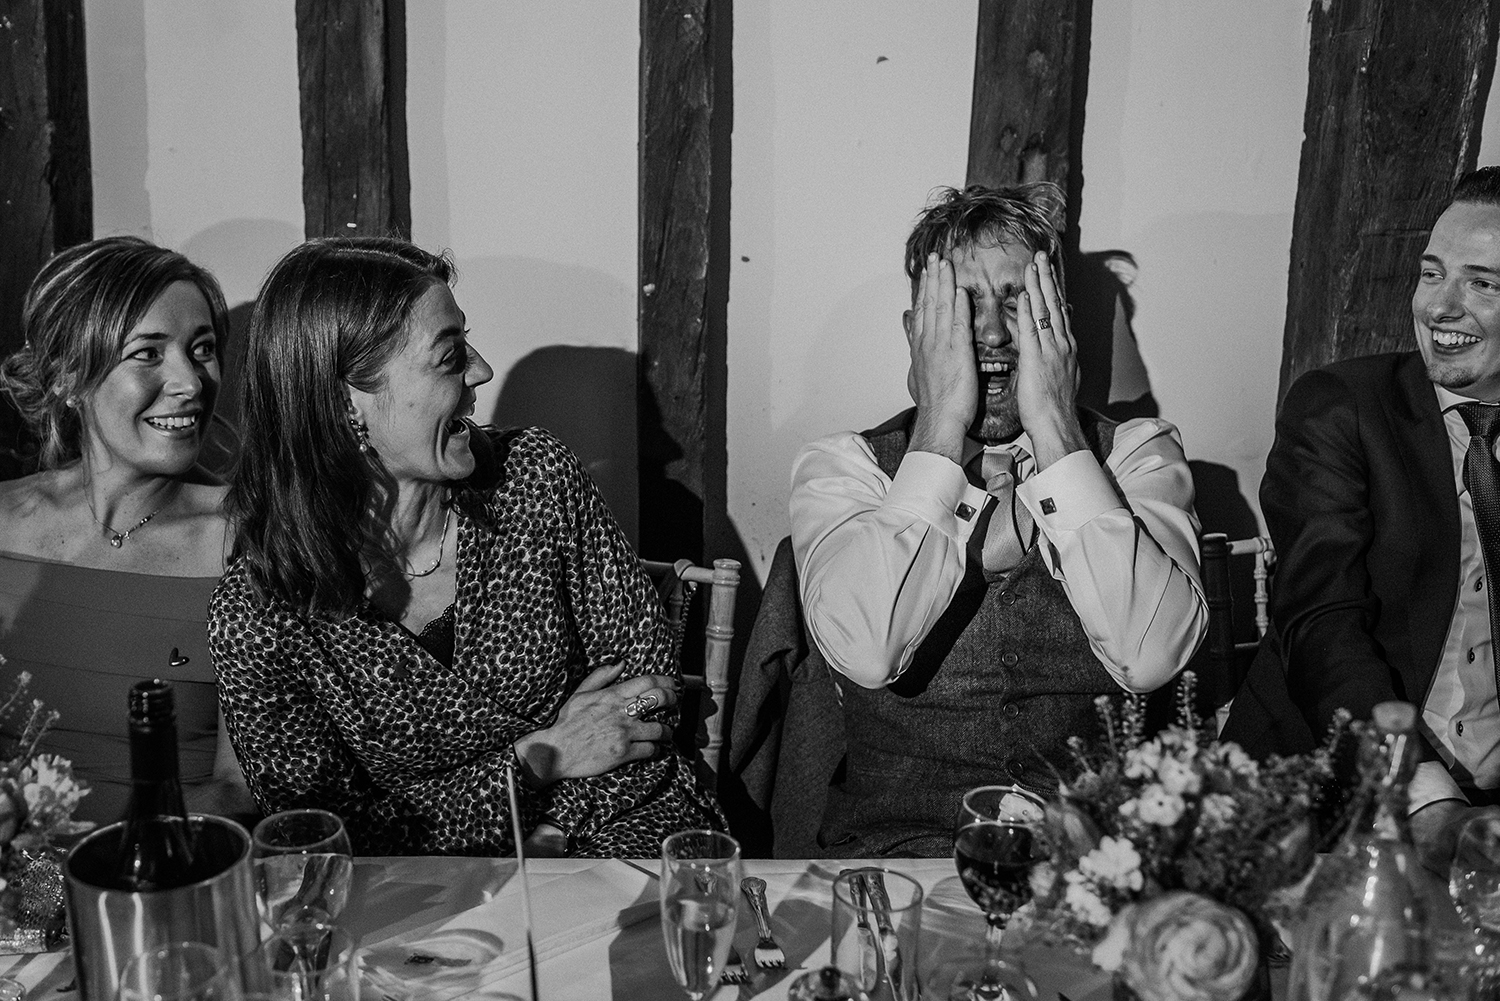 bw photo of an embarrassed guest with two ladies sat next to him laughing